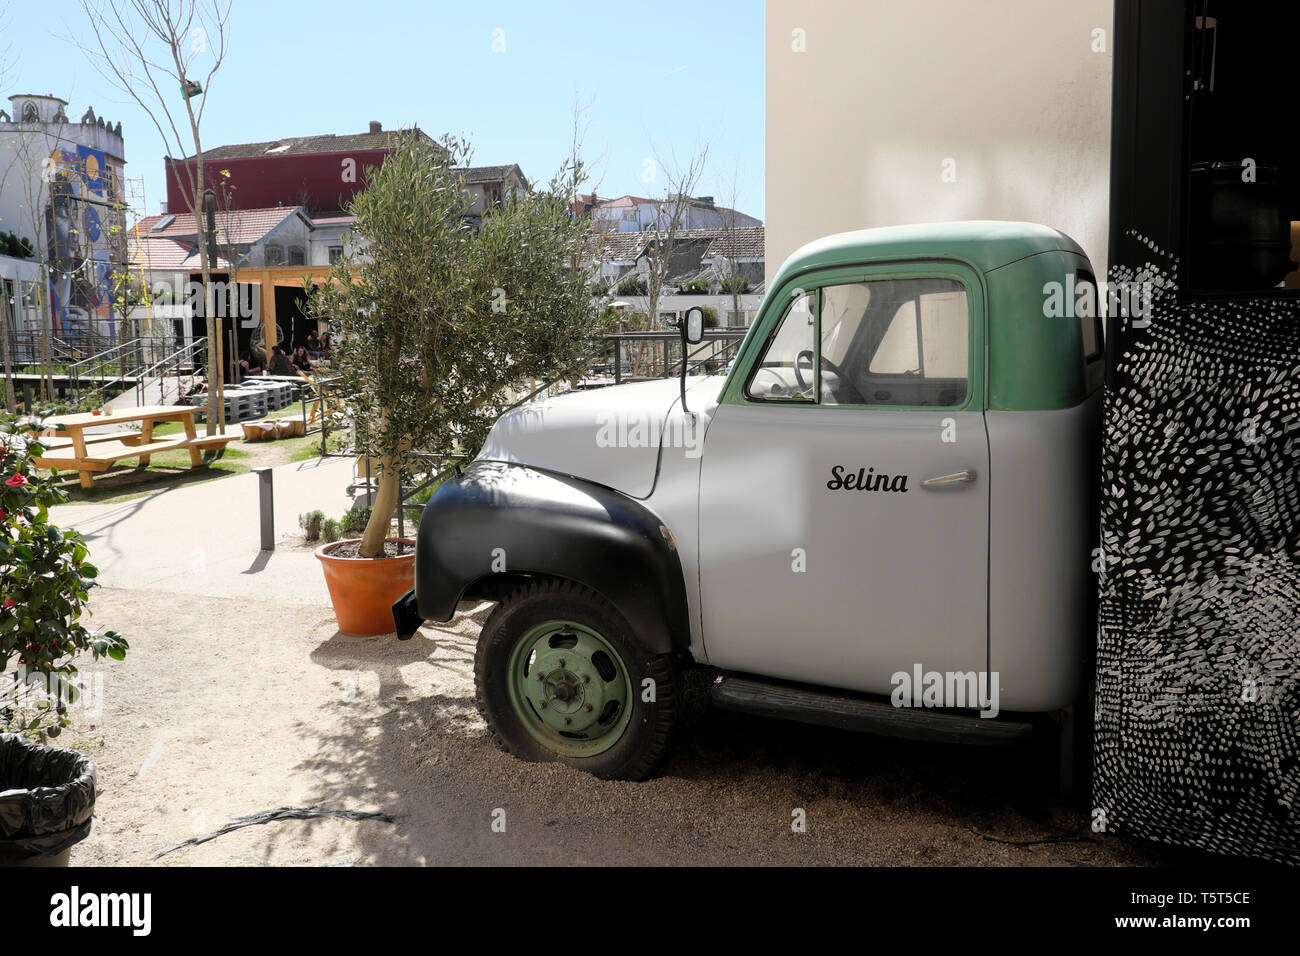 Pickup Trucks In Europe High Resolution Stock Photography And Images Alamy